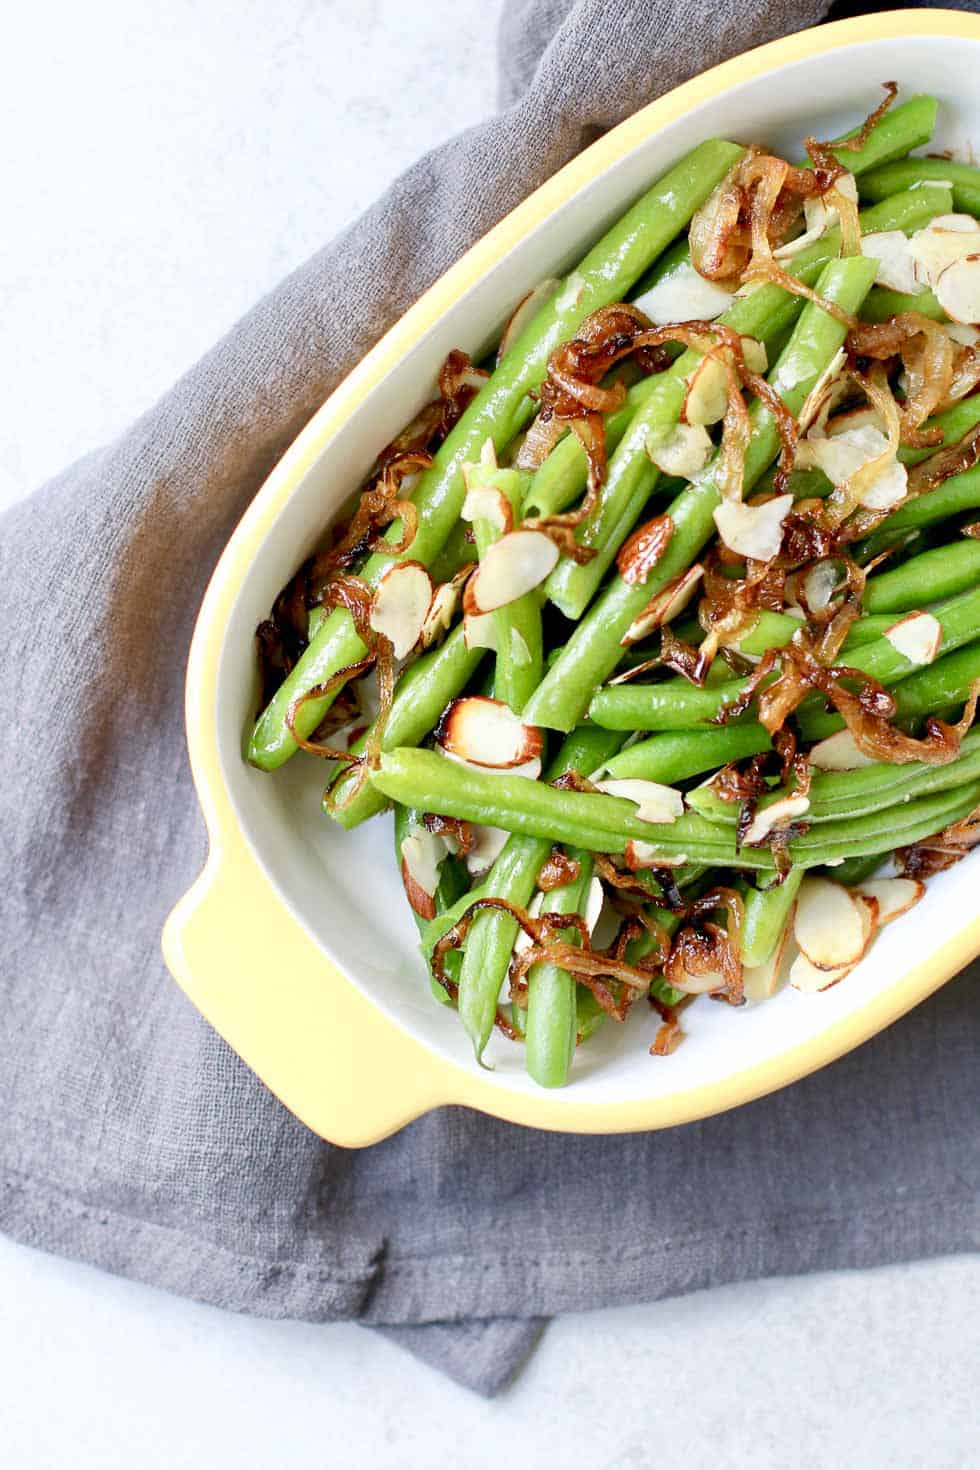 A gratin dish full of cooked green beans and almonds.